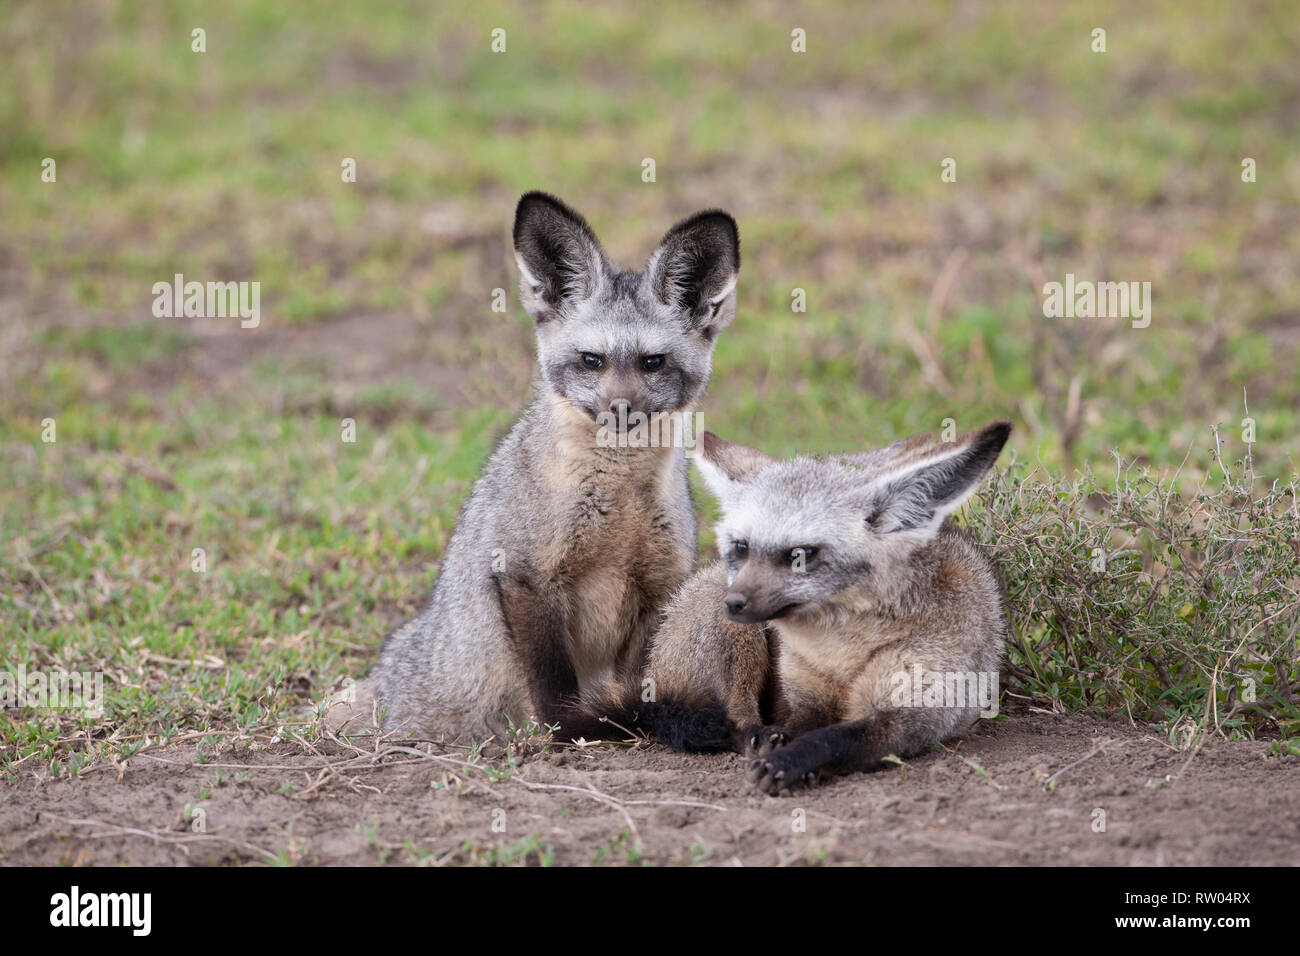 A pair of Bat eared foxes Otocyon megalotis resting on grassland in African savanna in Ndutu, Tanzania - Stock Image